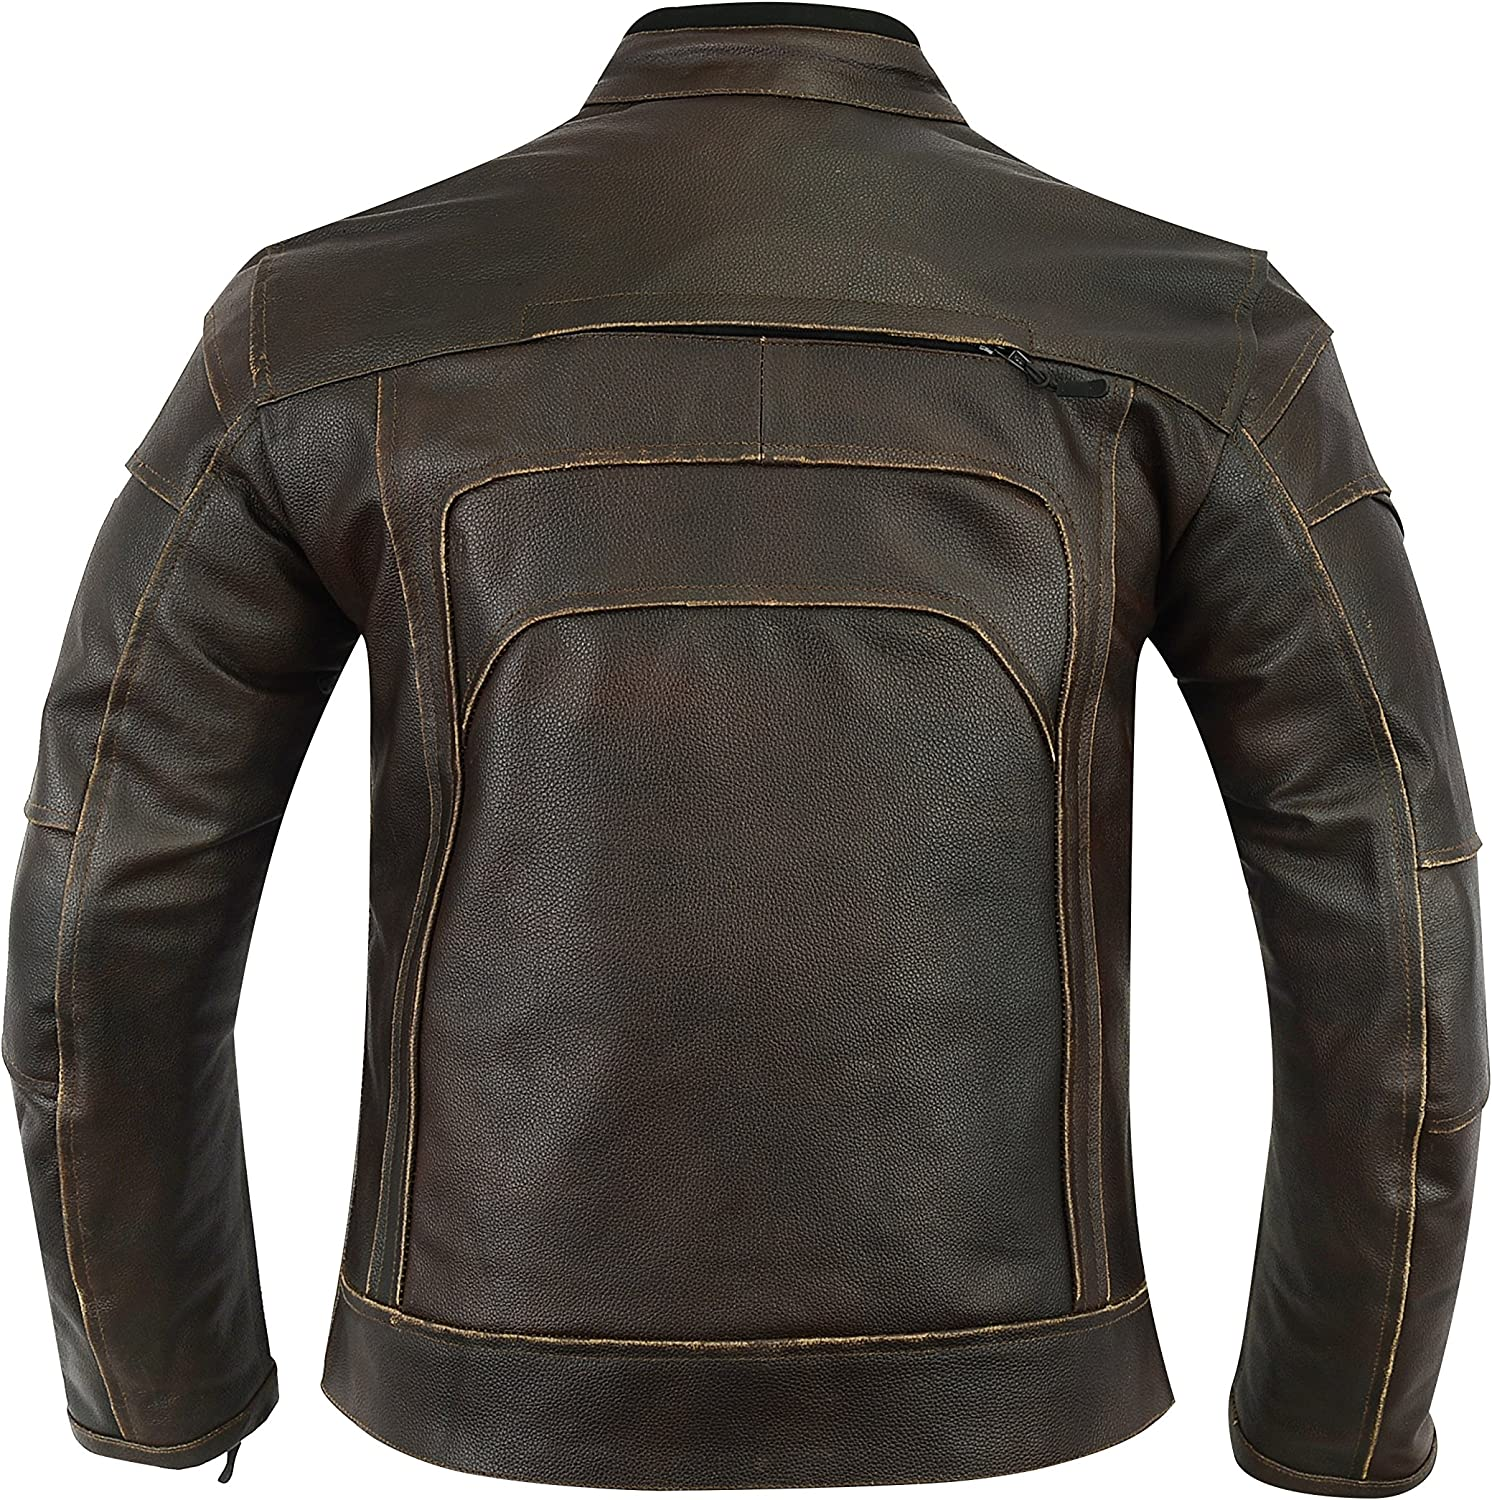 MOTORCYCLE BIKERS ARMORED POWER SPORTS LEATHER MENS JACKET ANTIQUE BROWN RUB OFF TK-1716 S